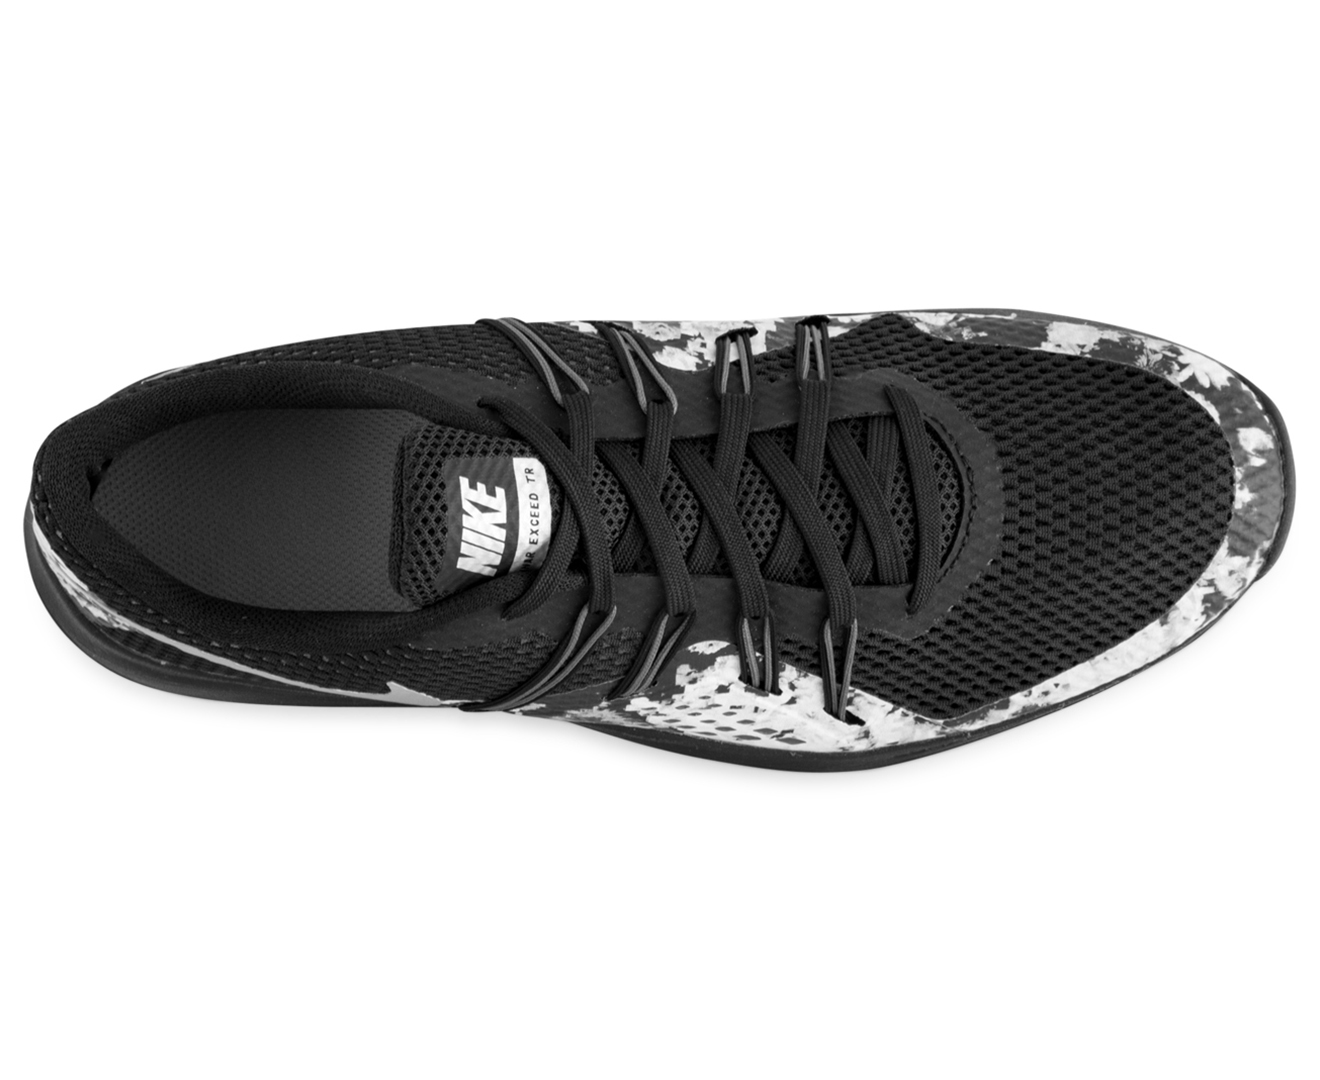 67d68a5fb1 Nike Women s Lunar Exceed TR Print Shoe - Black Metallic Silver ...